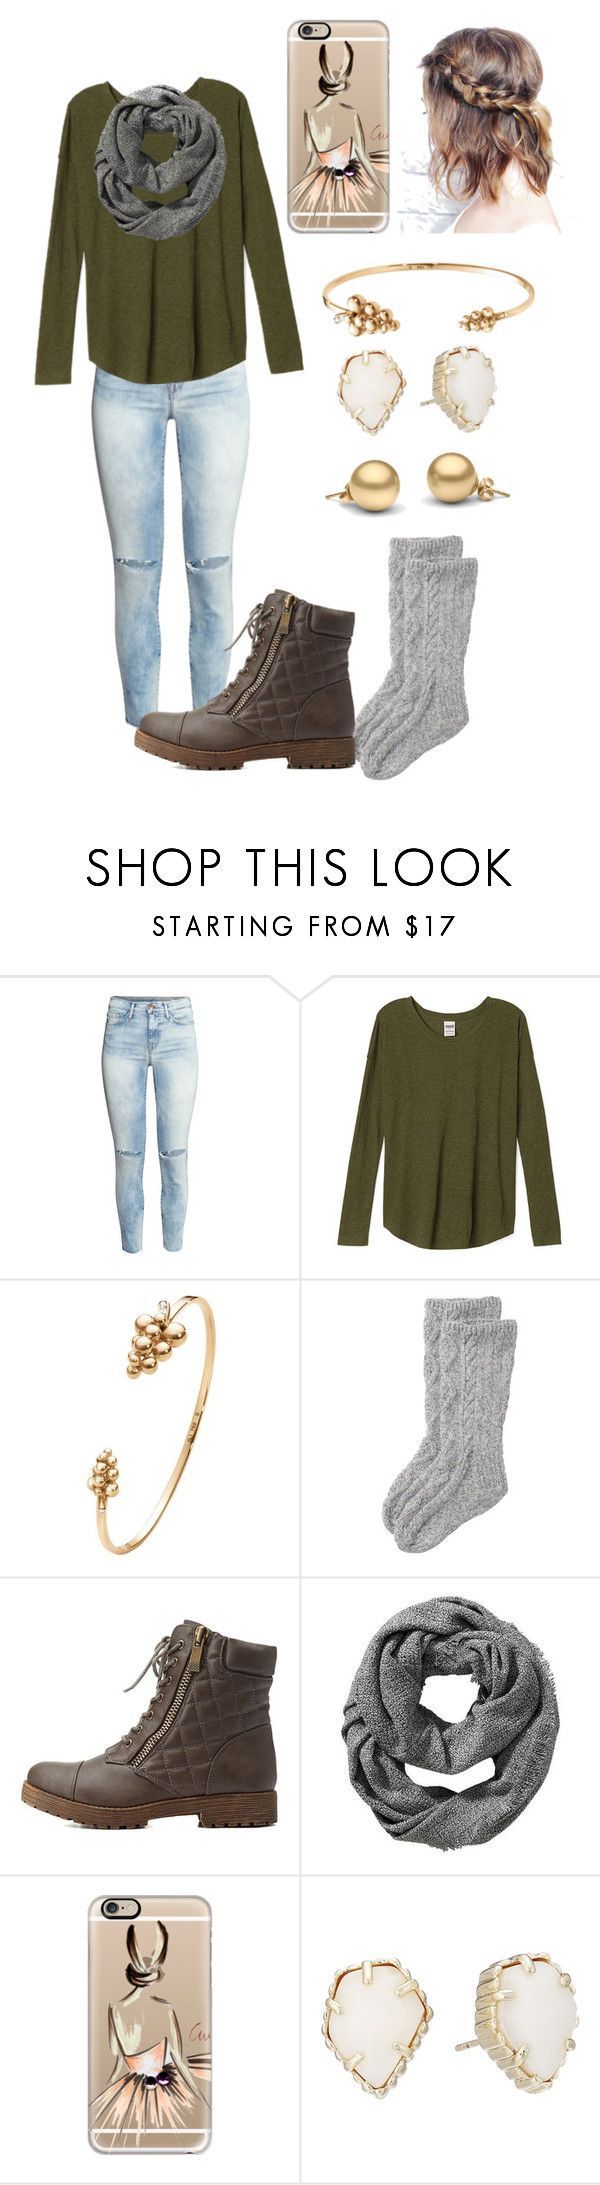 """Untitled #29"" by madelyn-abigail ❤ liked on Polyvore featuring H&M, Georg Jensen, Toast, Charlotte Russe, Old Navy, Casetify and Kendra Scott"